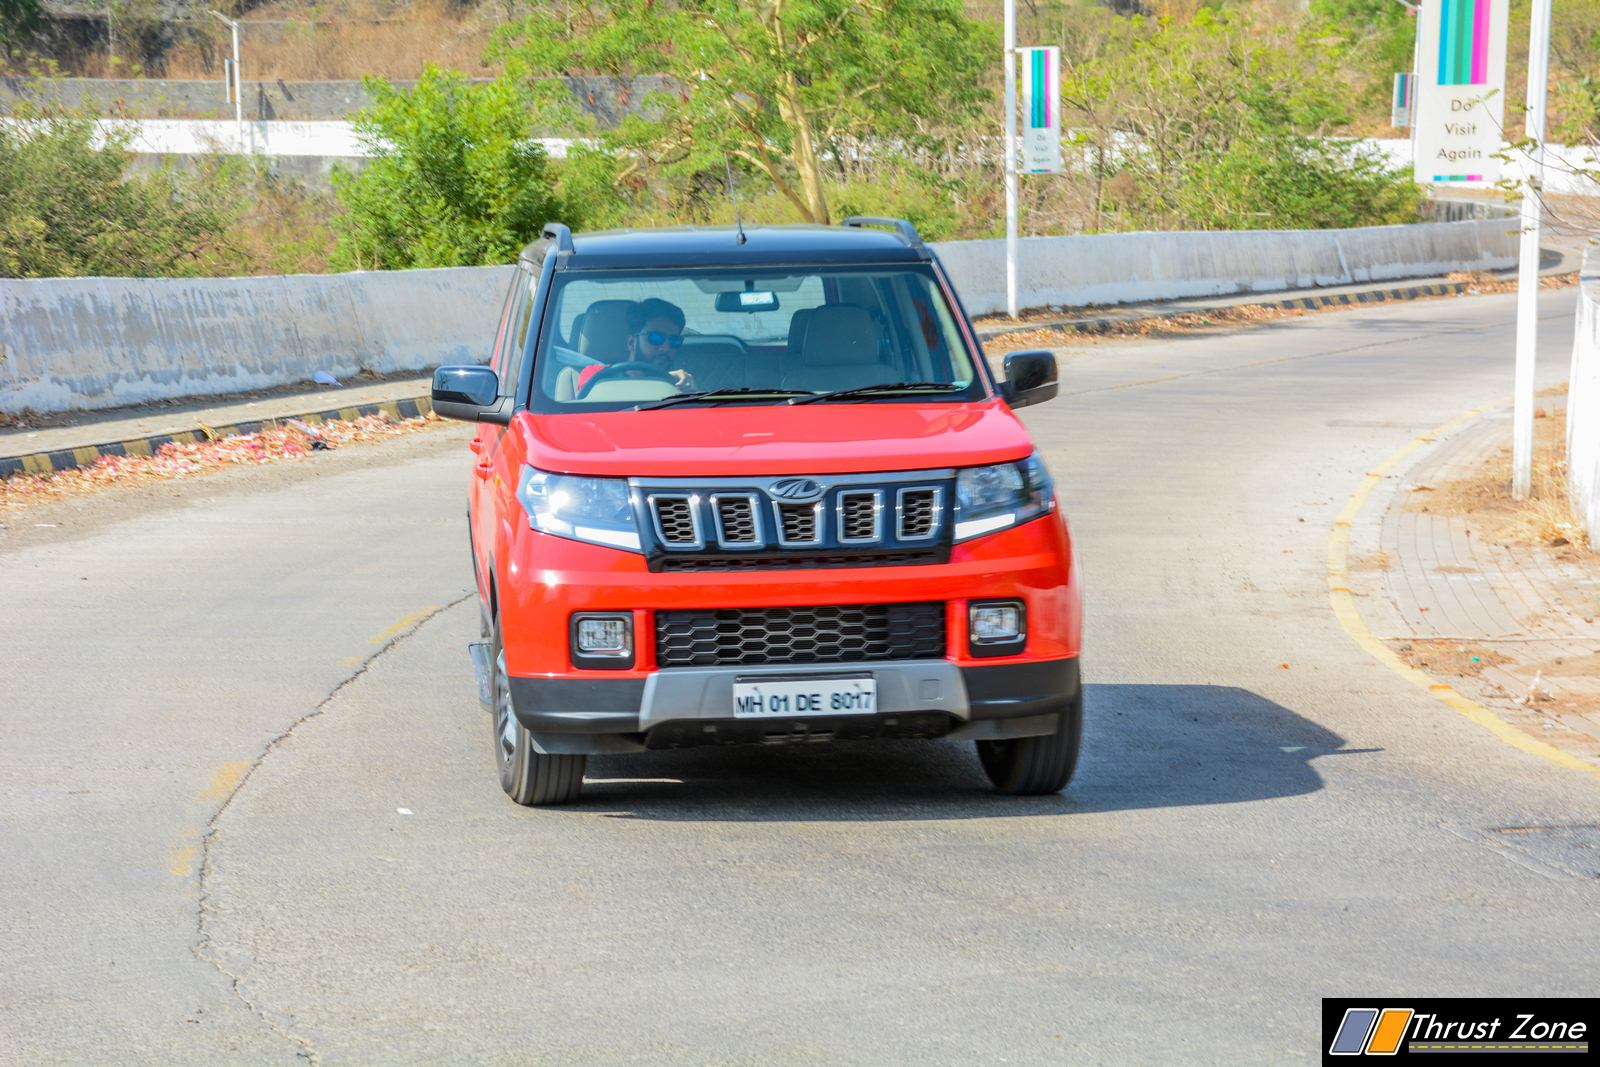 https://www.thrustzone.com/wp-content/uploads/2019/06/2019-mahindra-tuv-300-facelift-review-3-2.jpg